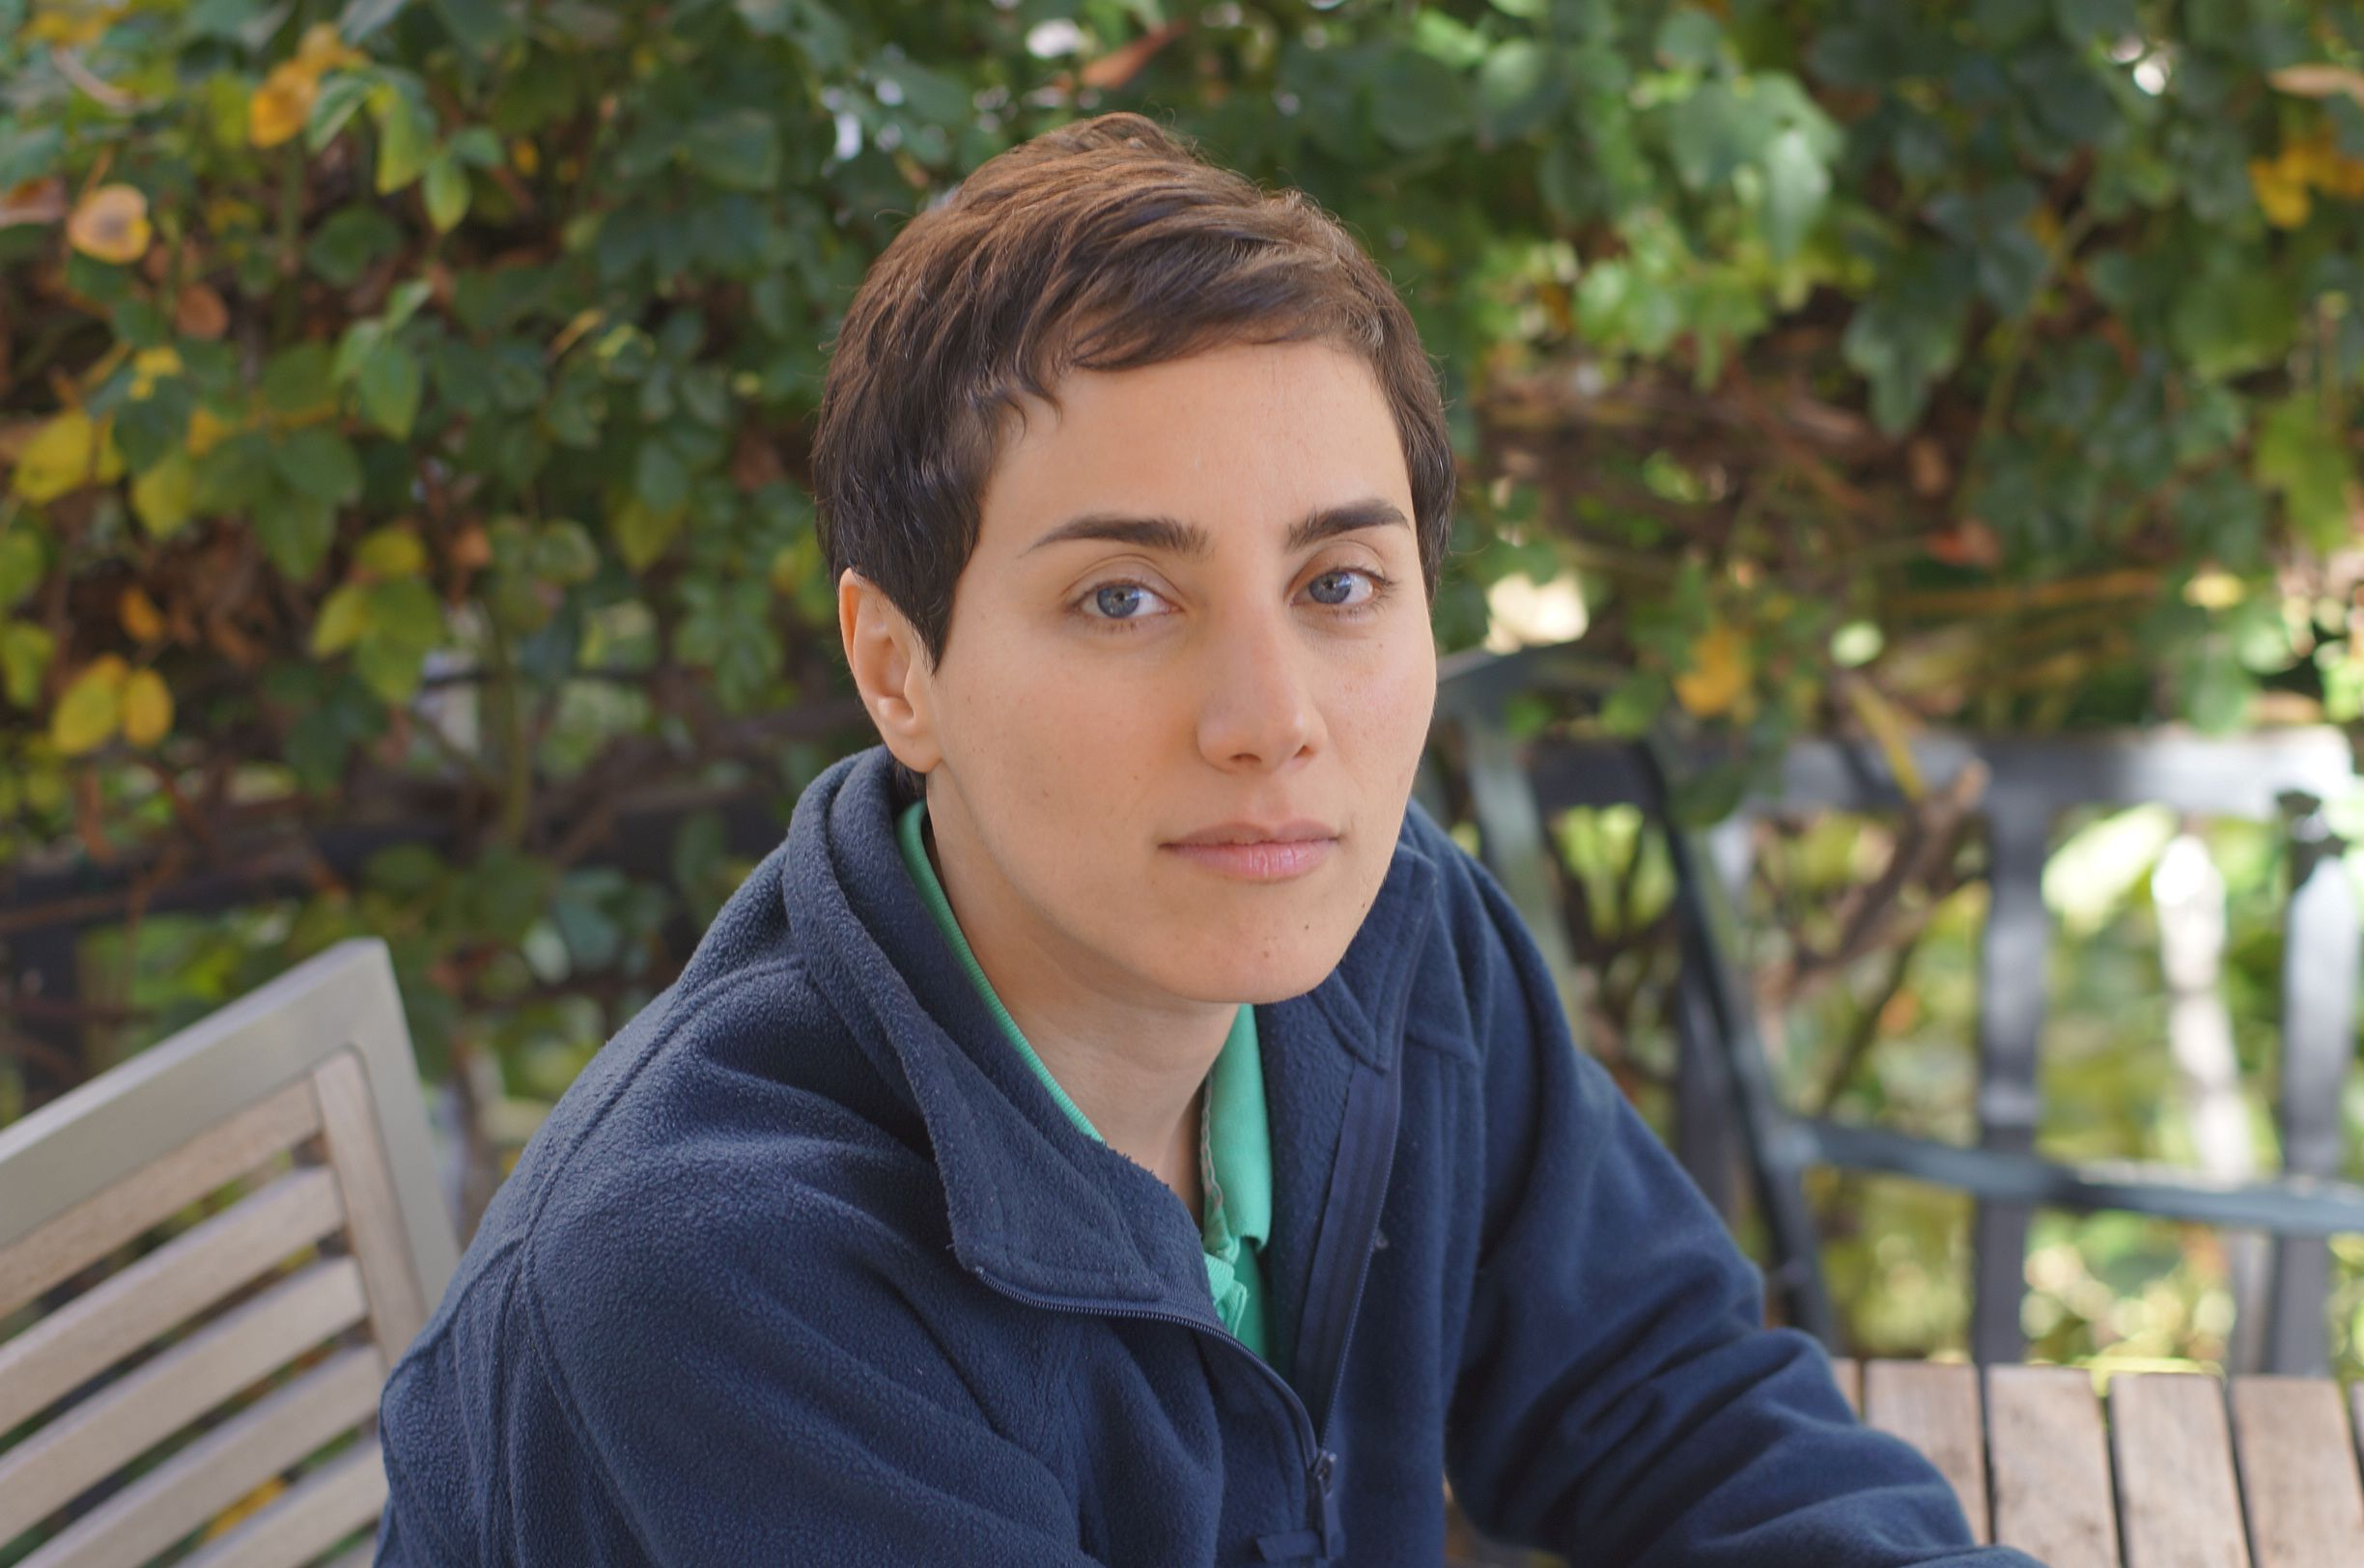 Acclaimed Stanford Mathematician Maryam Mirzakhani Dies At 40